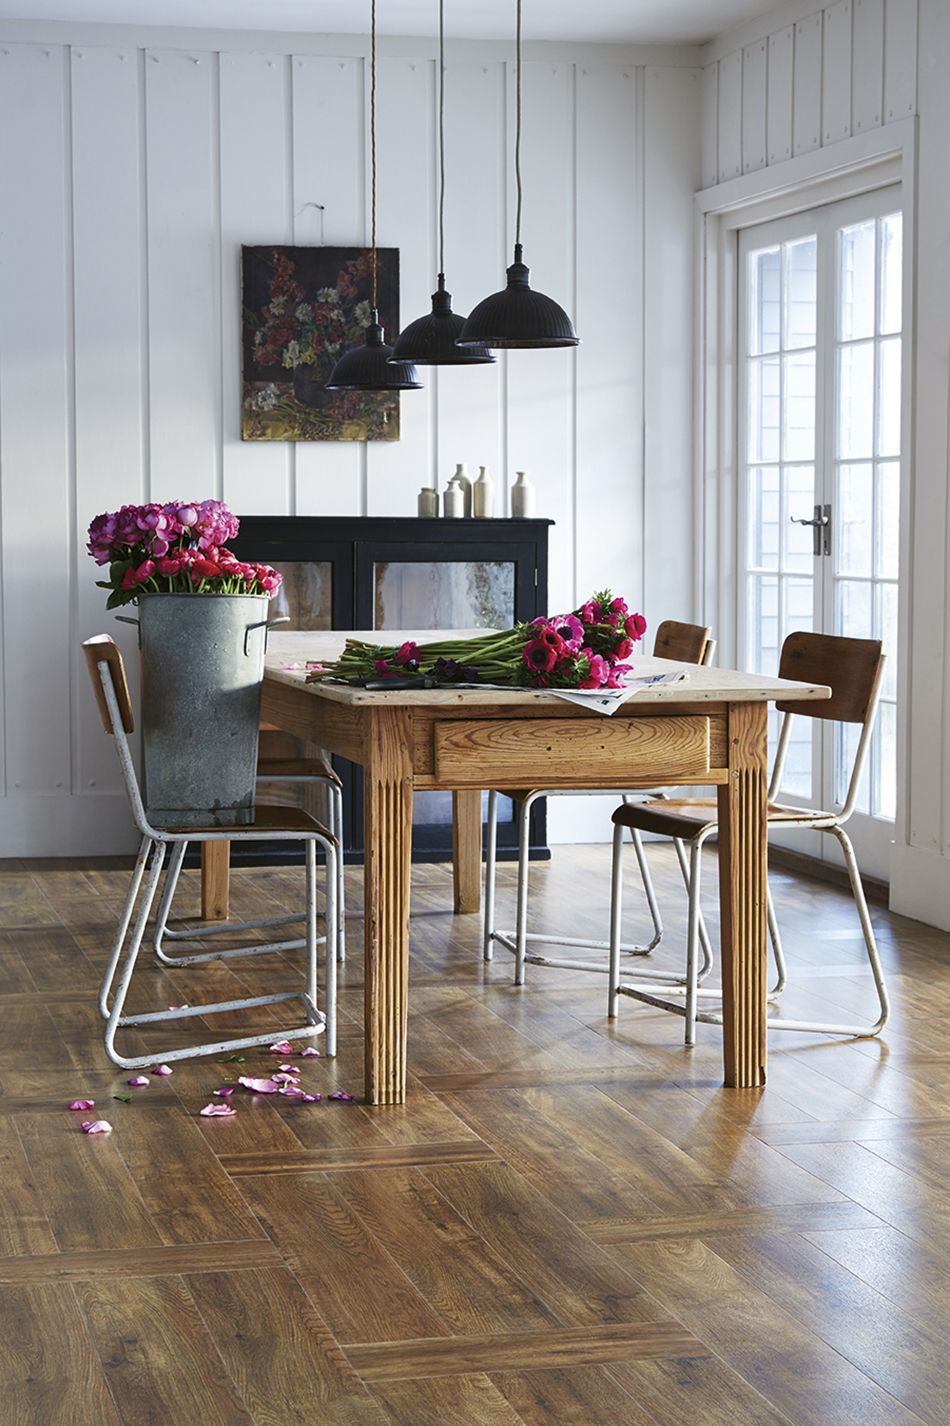 LVT Wood Effect Flooring With A Matching Wooden Dining Table Get Your Here